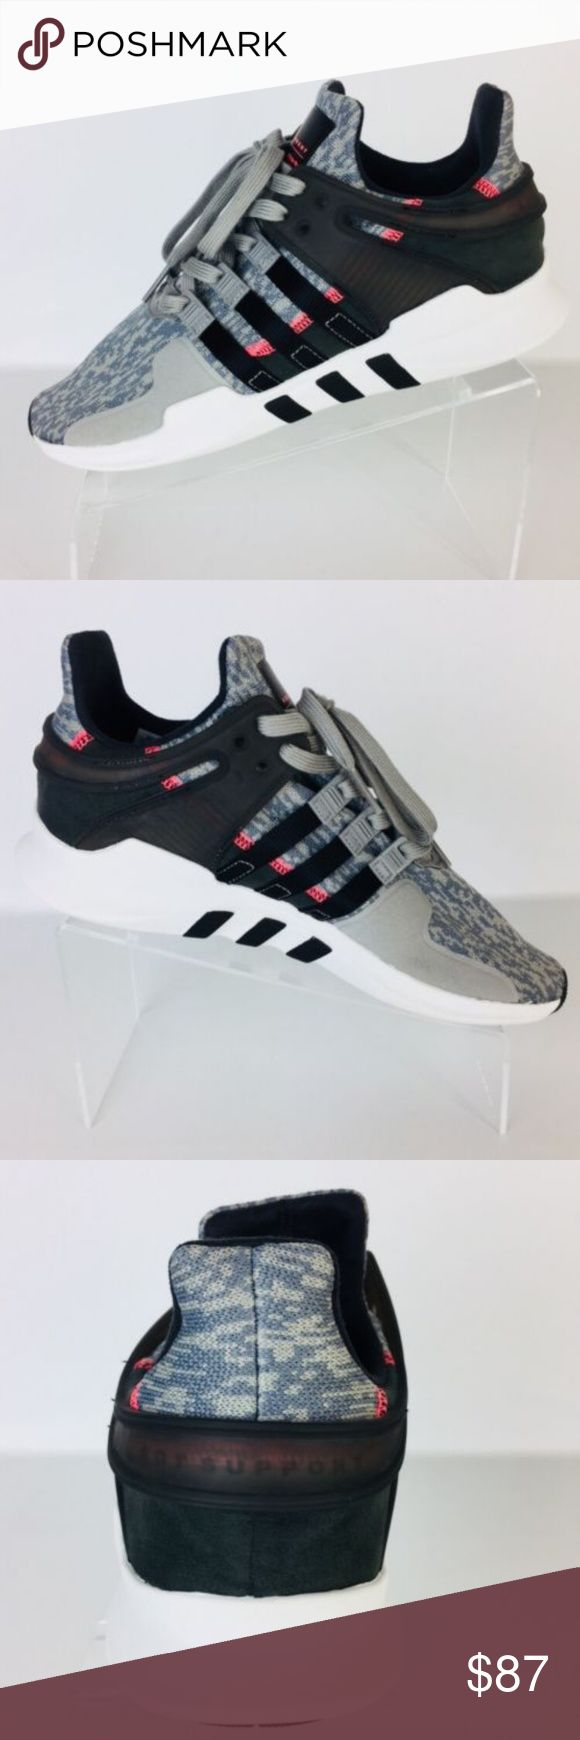 Adidas EQT Support ADV Running Shoes NEW Adidas EQT Support ADV Running Shoes Mens size: 10 us Brand new without the box Model S76963 adidas Shoes Athletic Shoes #runningshoes